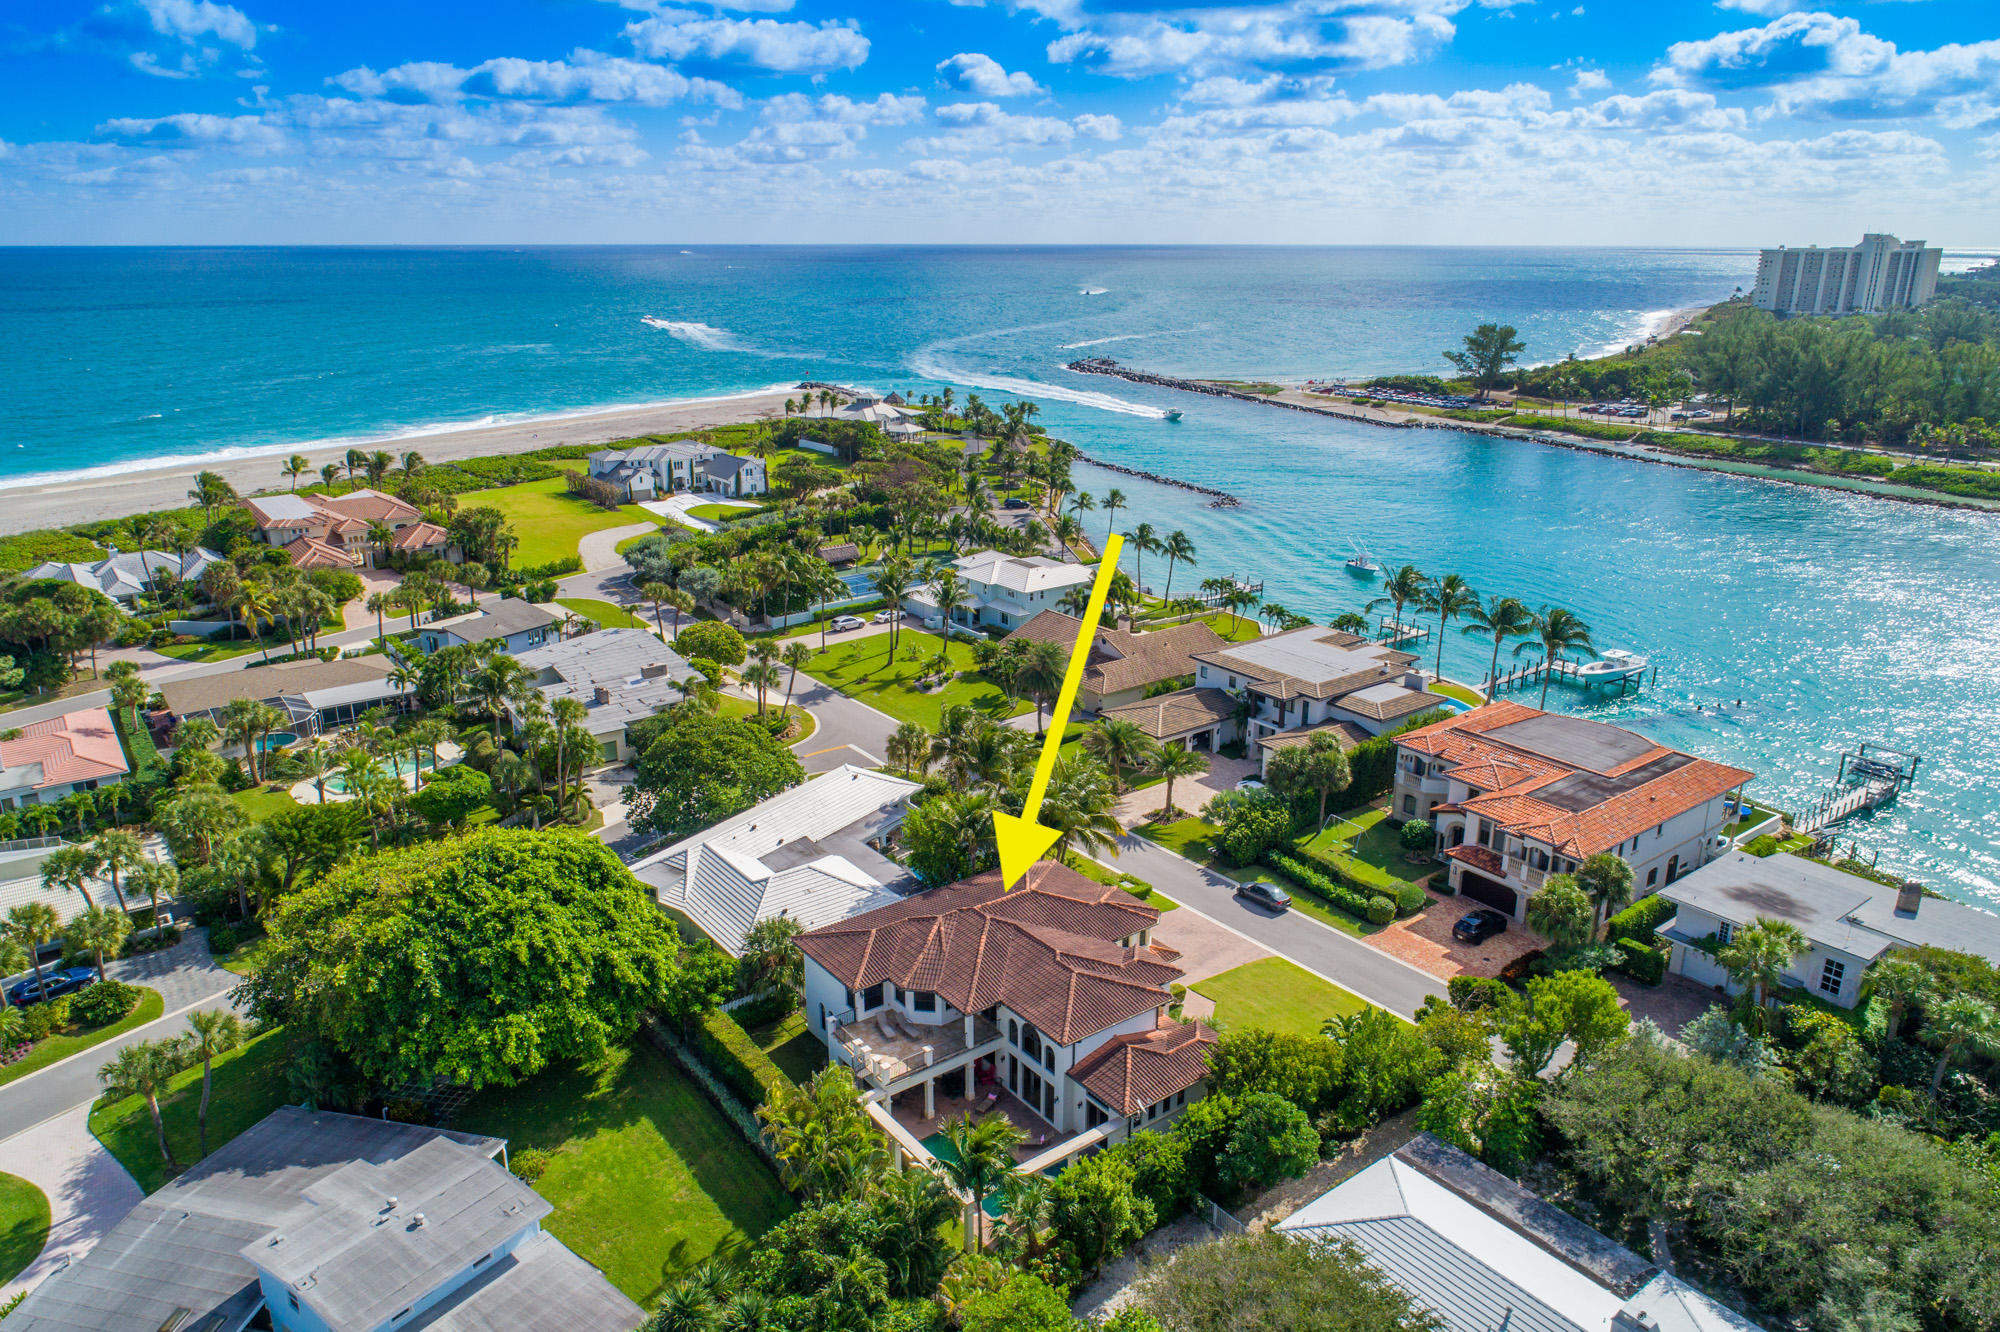 136 Lighthouse Drive - Jupiter Inlet Colony, Florida